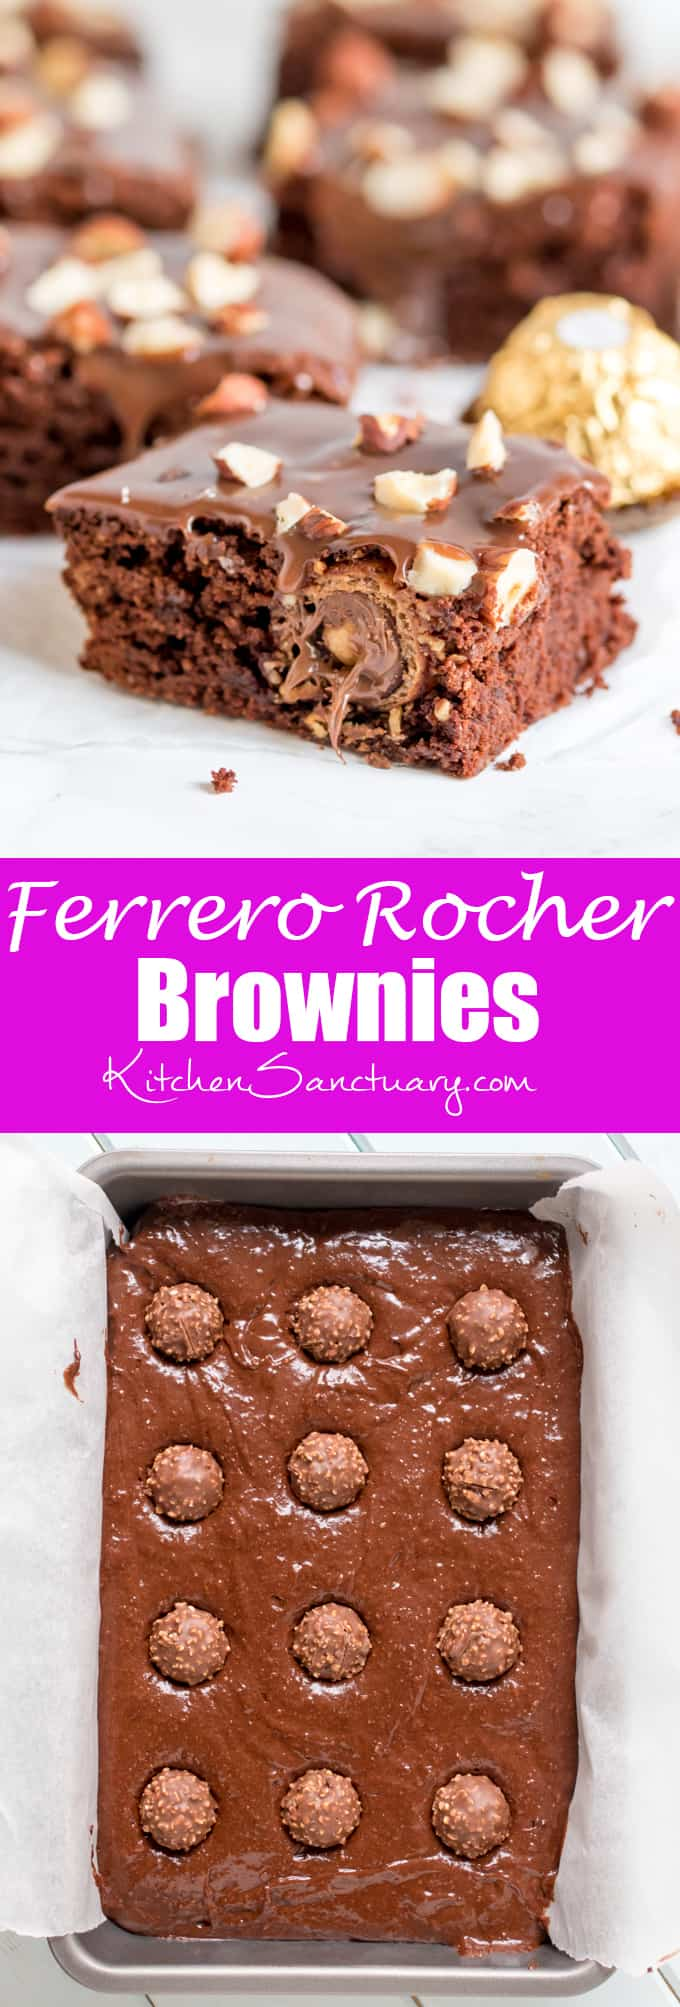 These Ferrero Rocher Brownies are the ultimate treat to go with your afternoon cup of coffee!